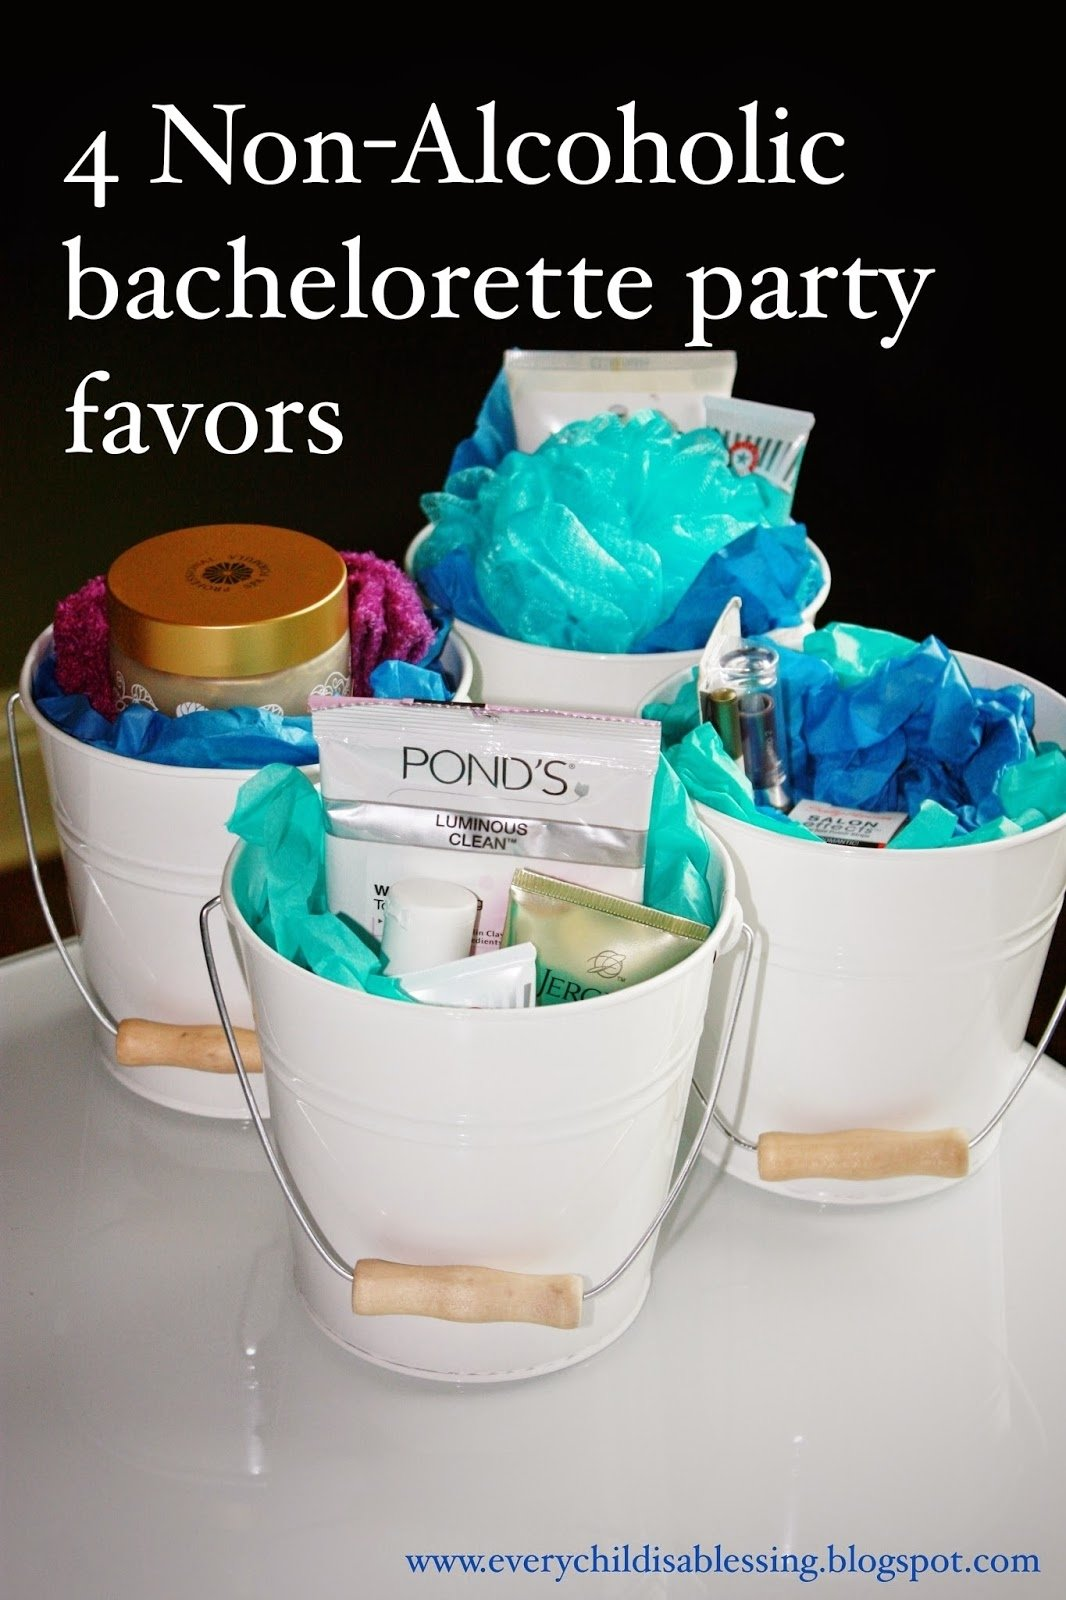 4 non-alcoholic bachelorette favors | every child is a blessing